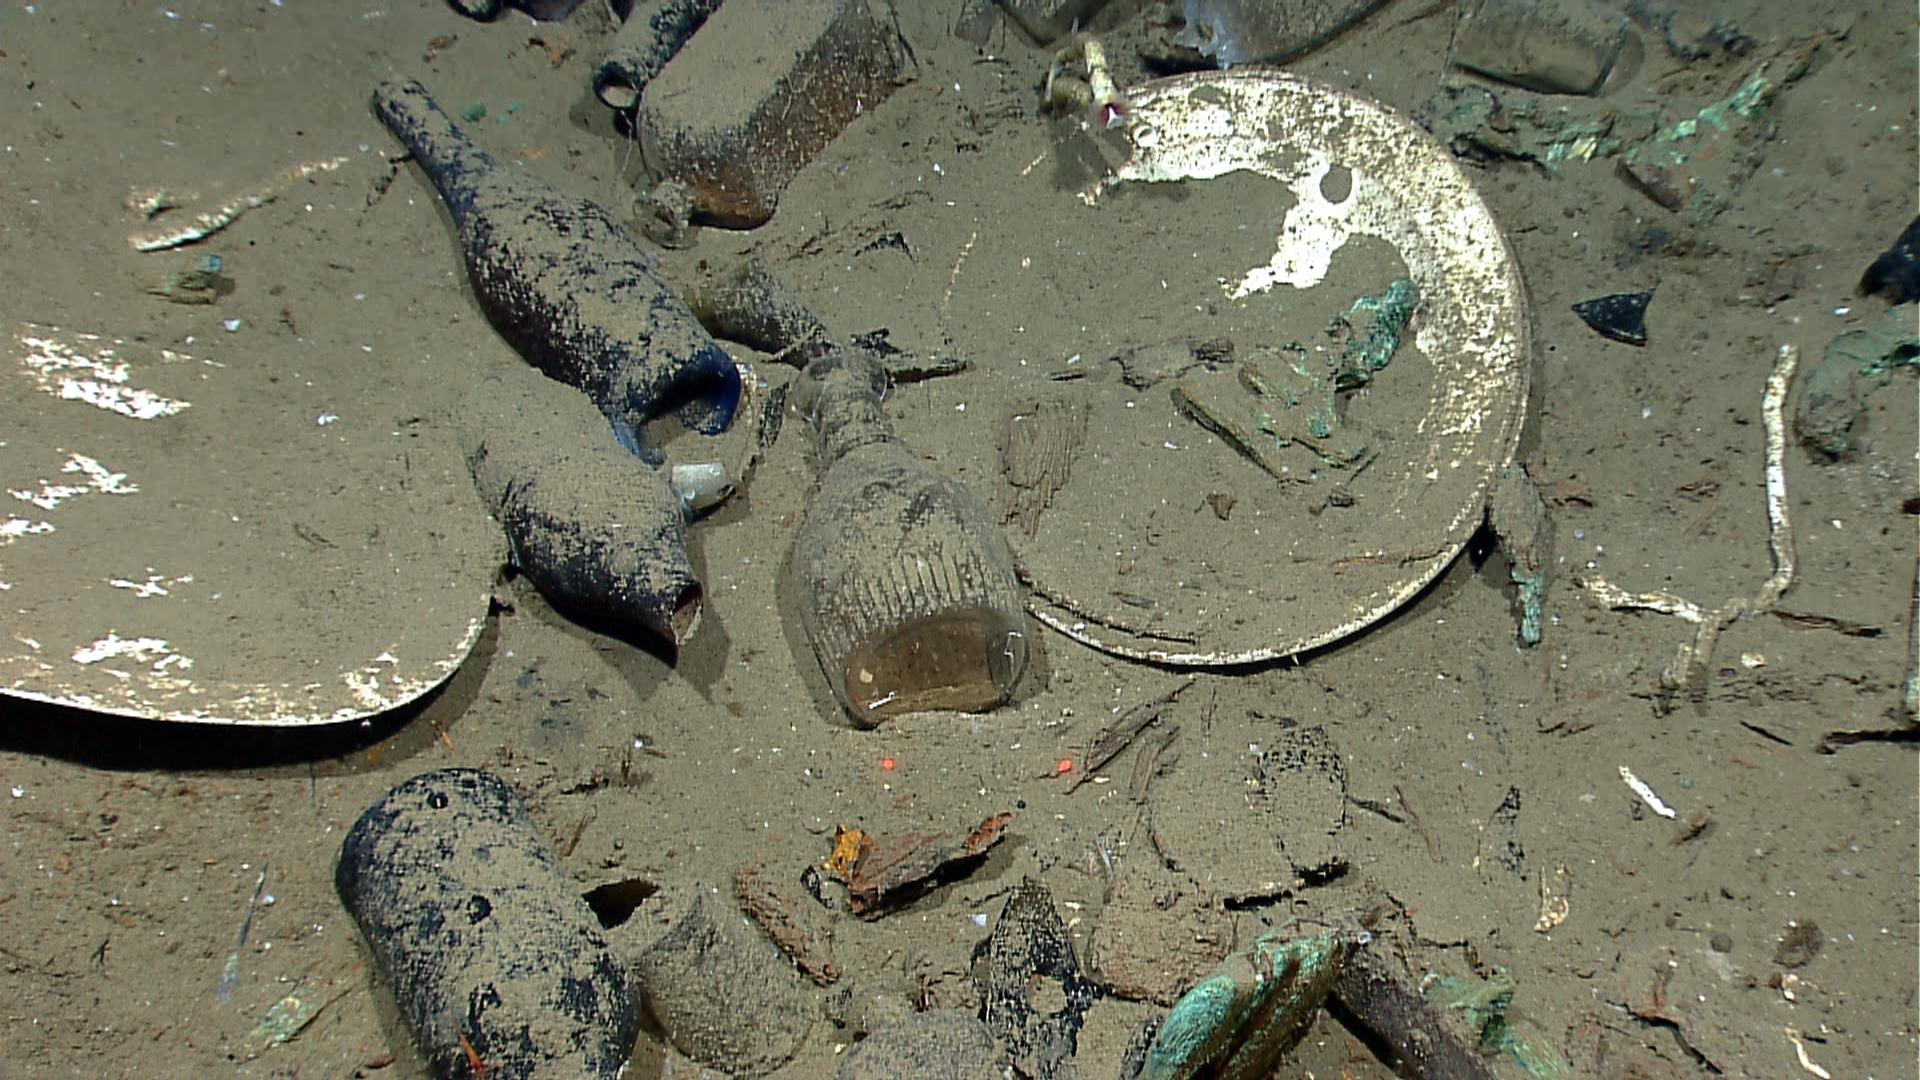 This photo provided by the NOAA Okeanos Explorer Program shows a variety of artifacts including ceramic plates, platters, bowls plus glass liquor, wine, medicine, and food storage bottles of many shapes and colors found inside a wrecked ship's hull, in the Gulf of Mexico about 170 from Galveston, Texas. It may have sunk in the Gulf of Mexico 200 years ago. (AP Photo/NOAA Okeanos Explorer Program)